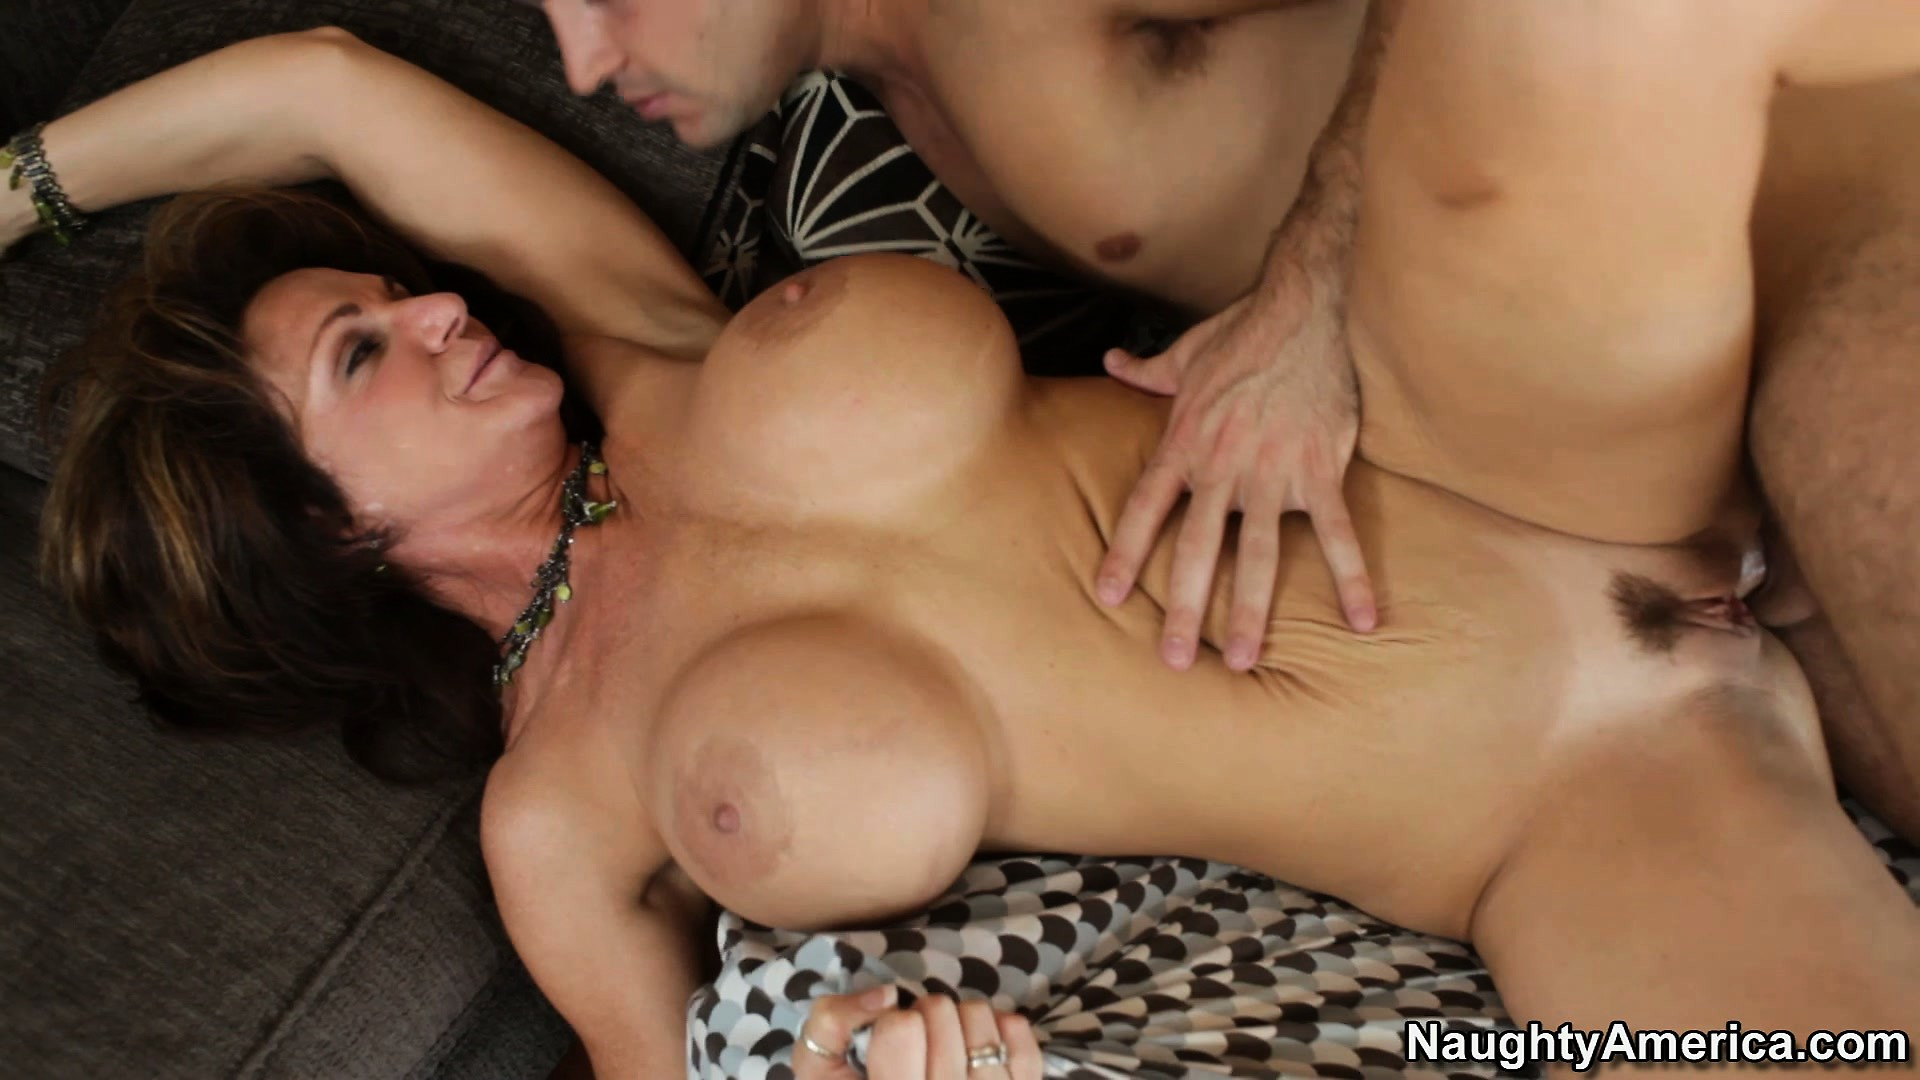 Porno Video of Deauxma Gets Her Tight Pussy Fucked From Behind While He Kisses Her